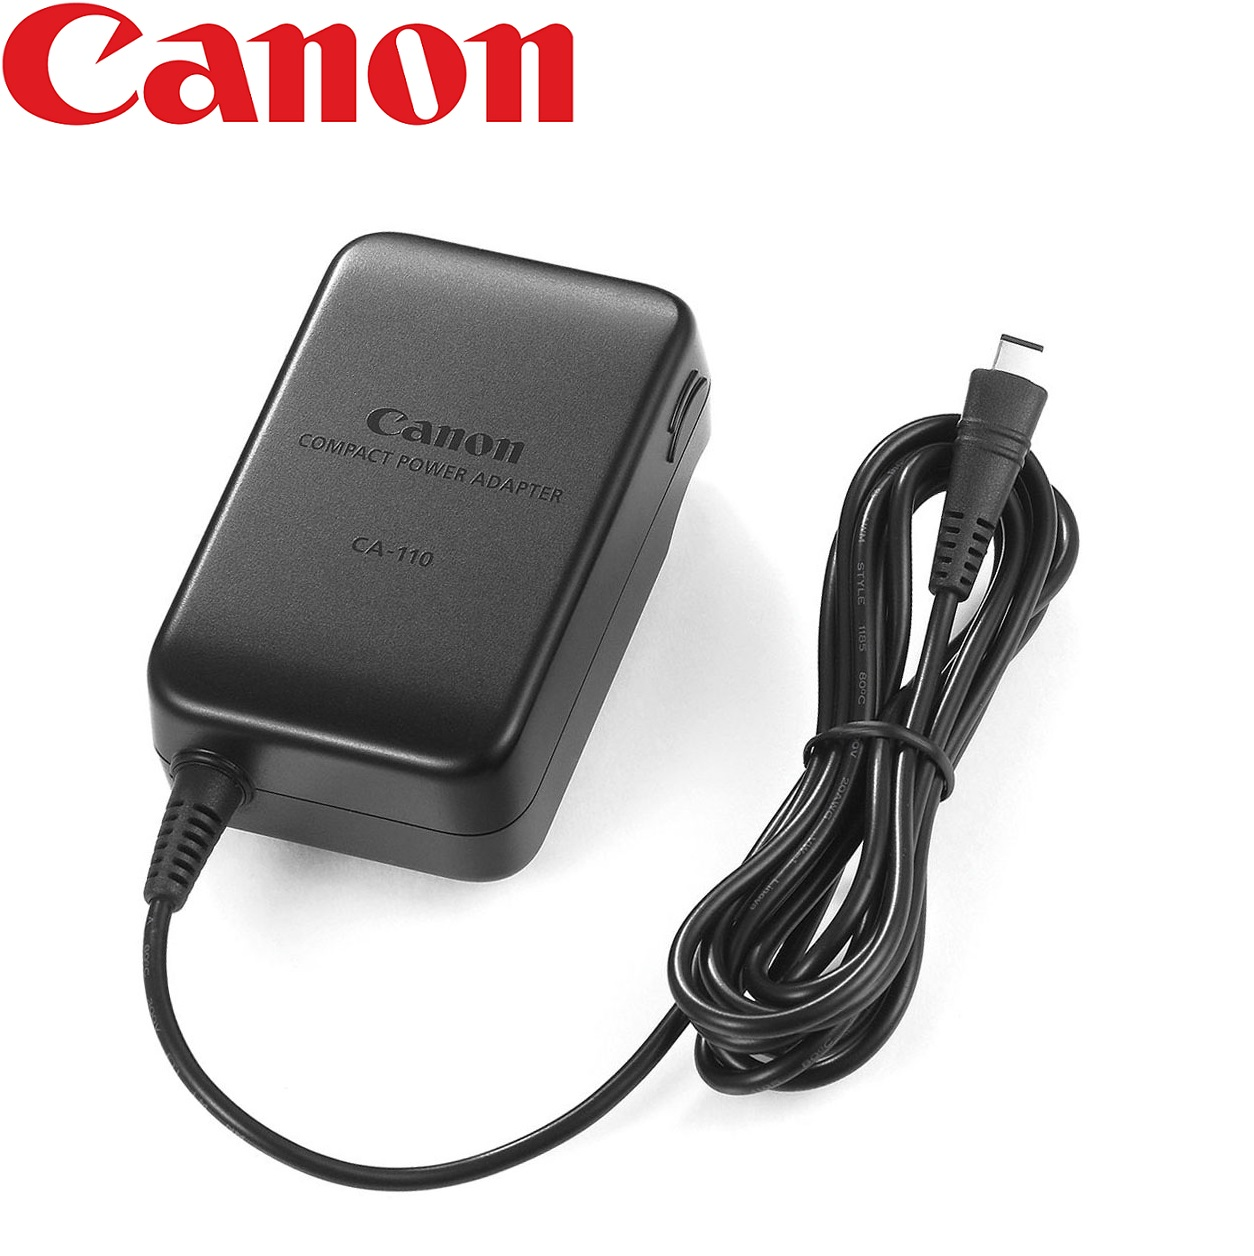 Canon CA-110 Compact AC Power Charger